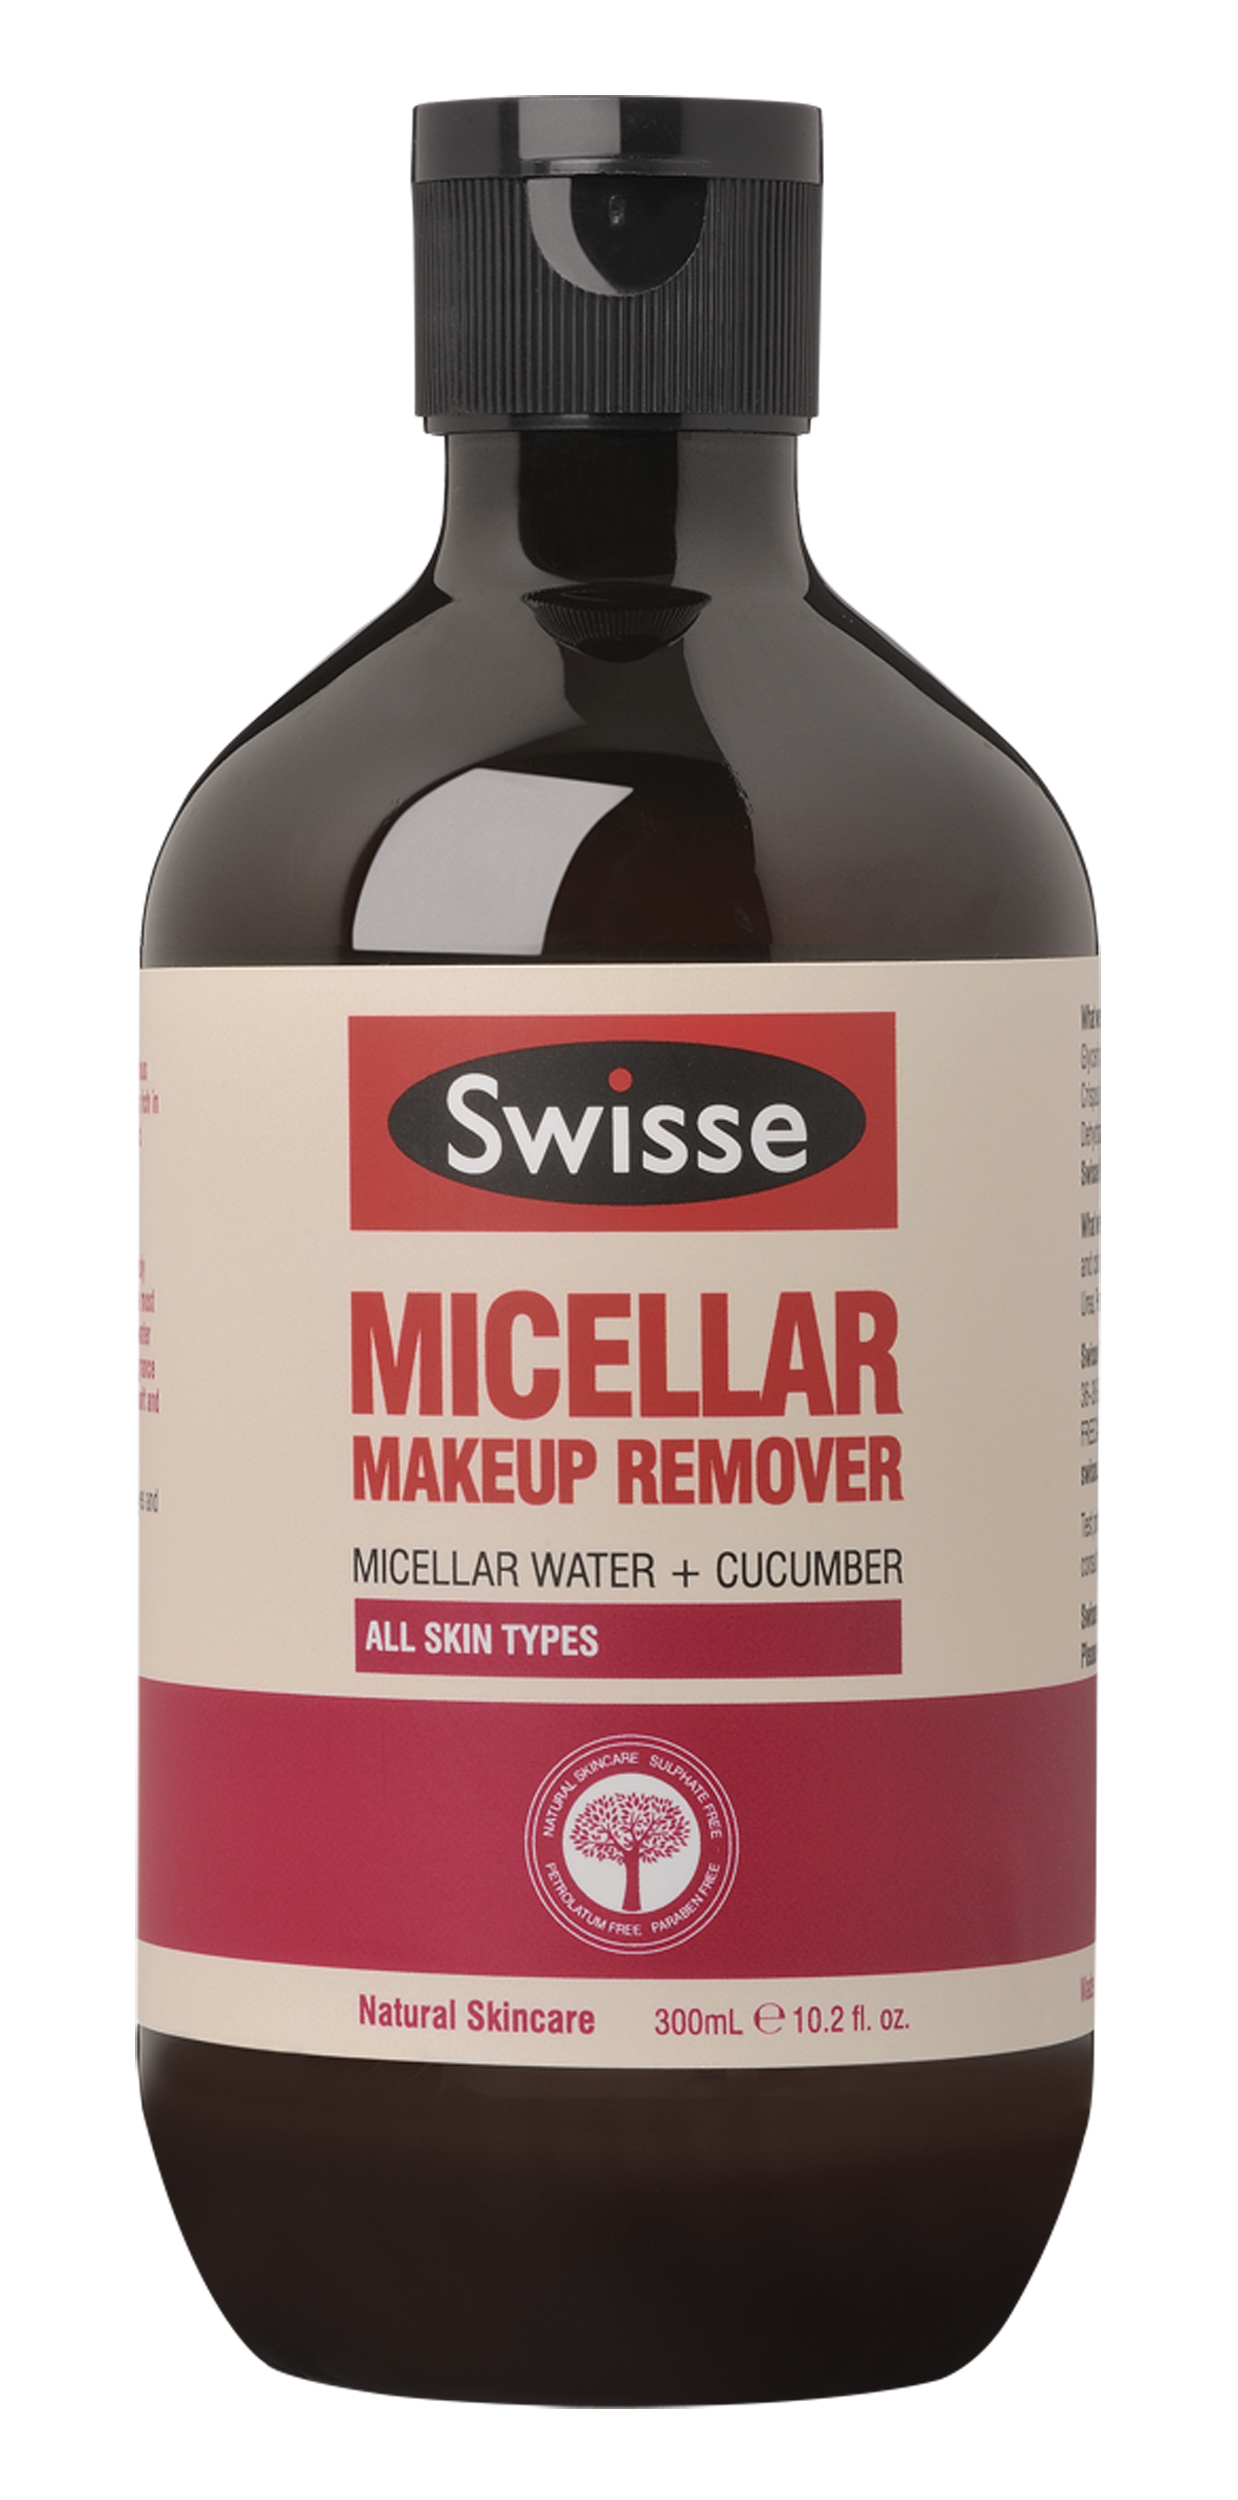 Swisse Micellar Makeup Revmover in brown bottle with white and pink labelling